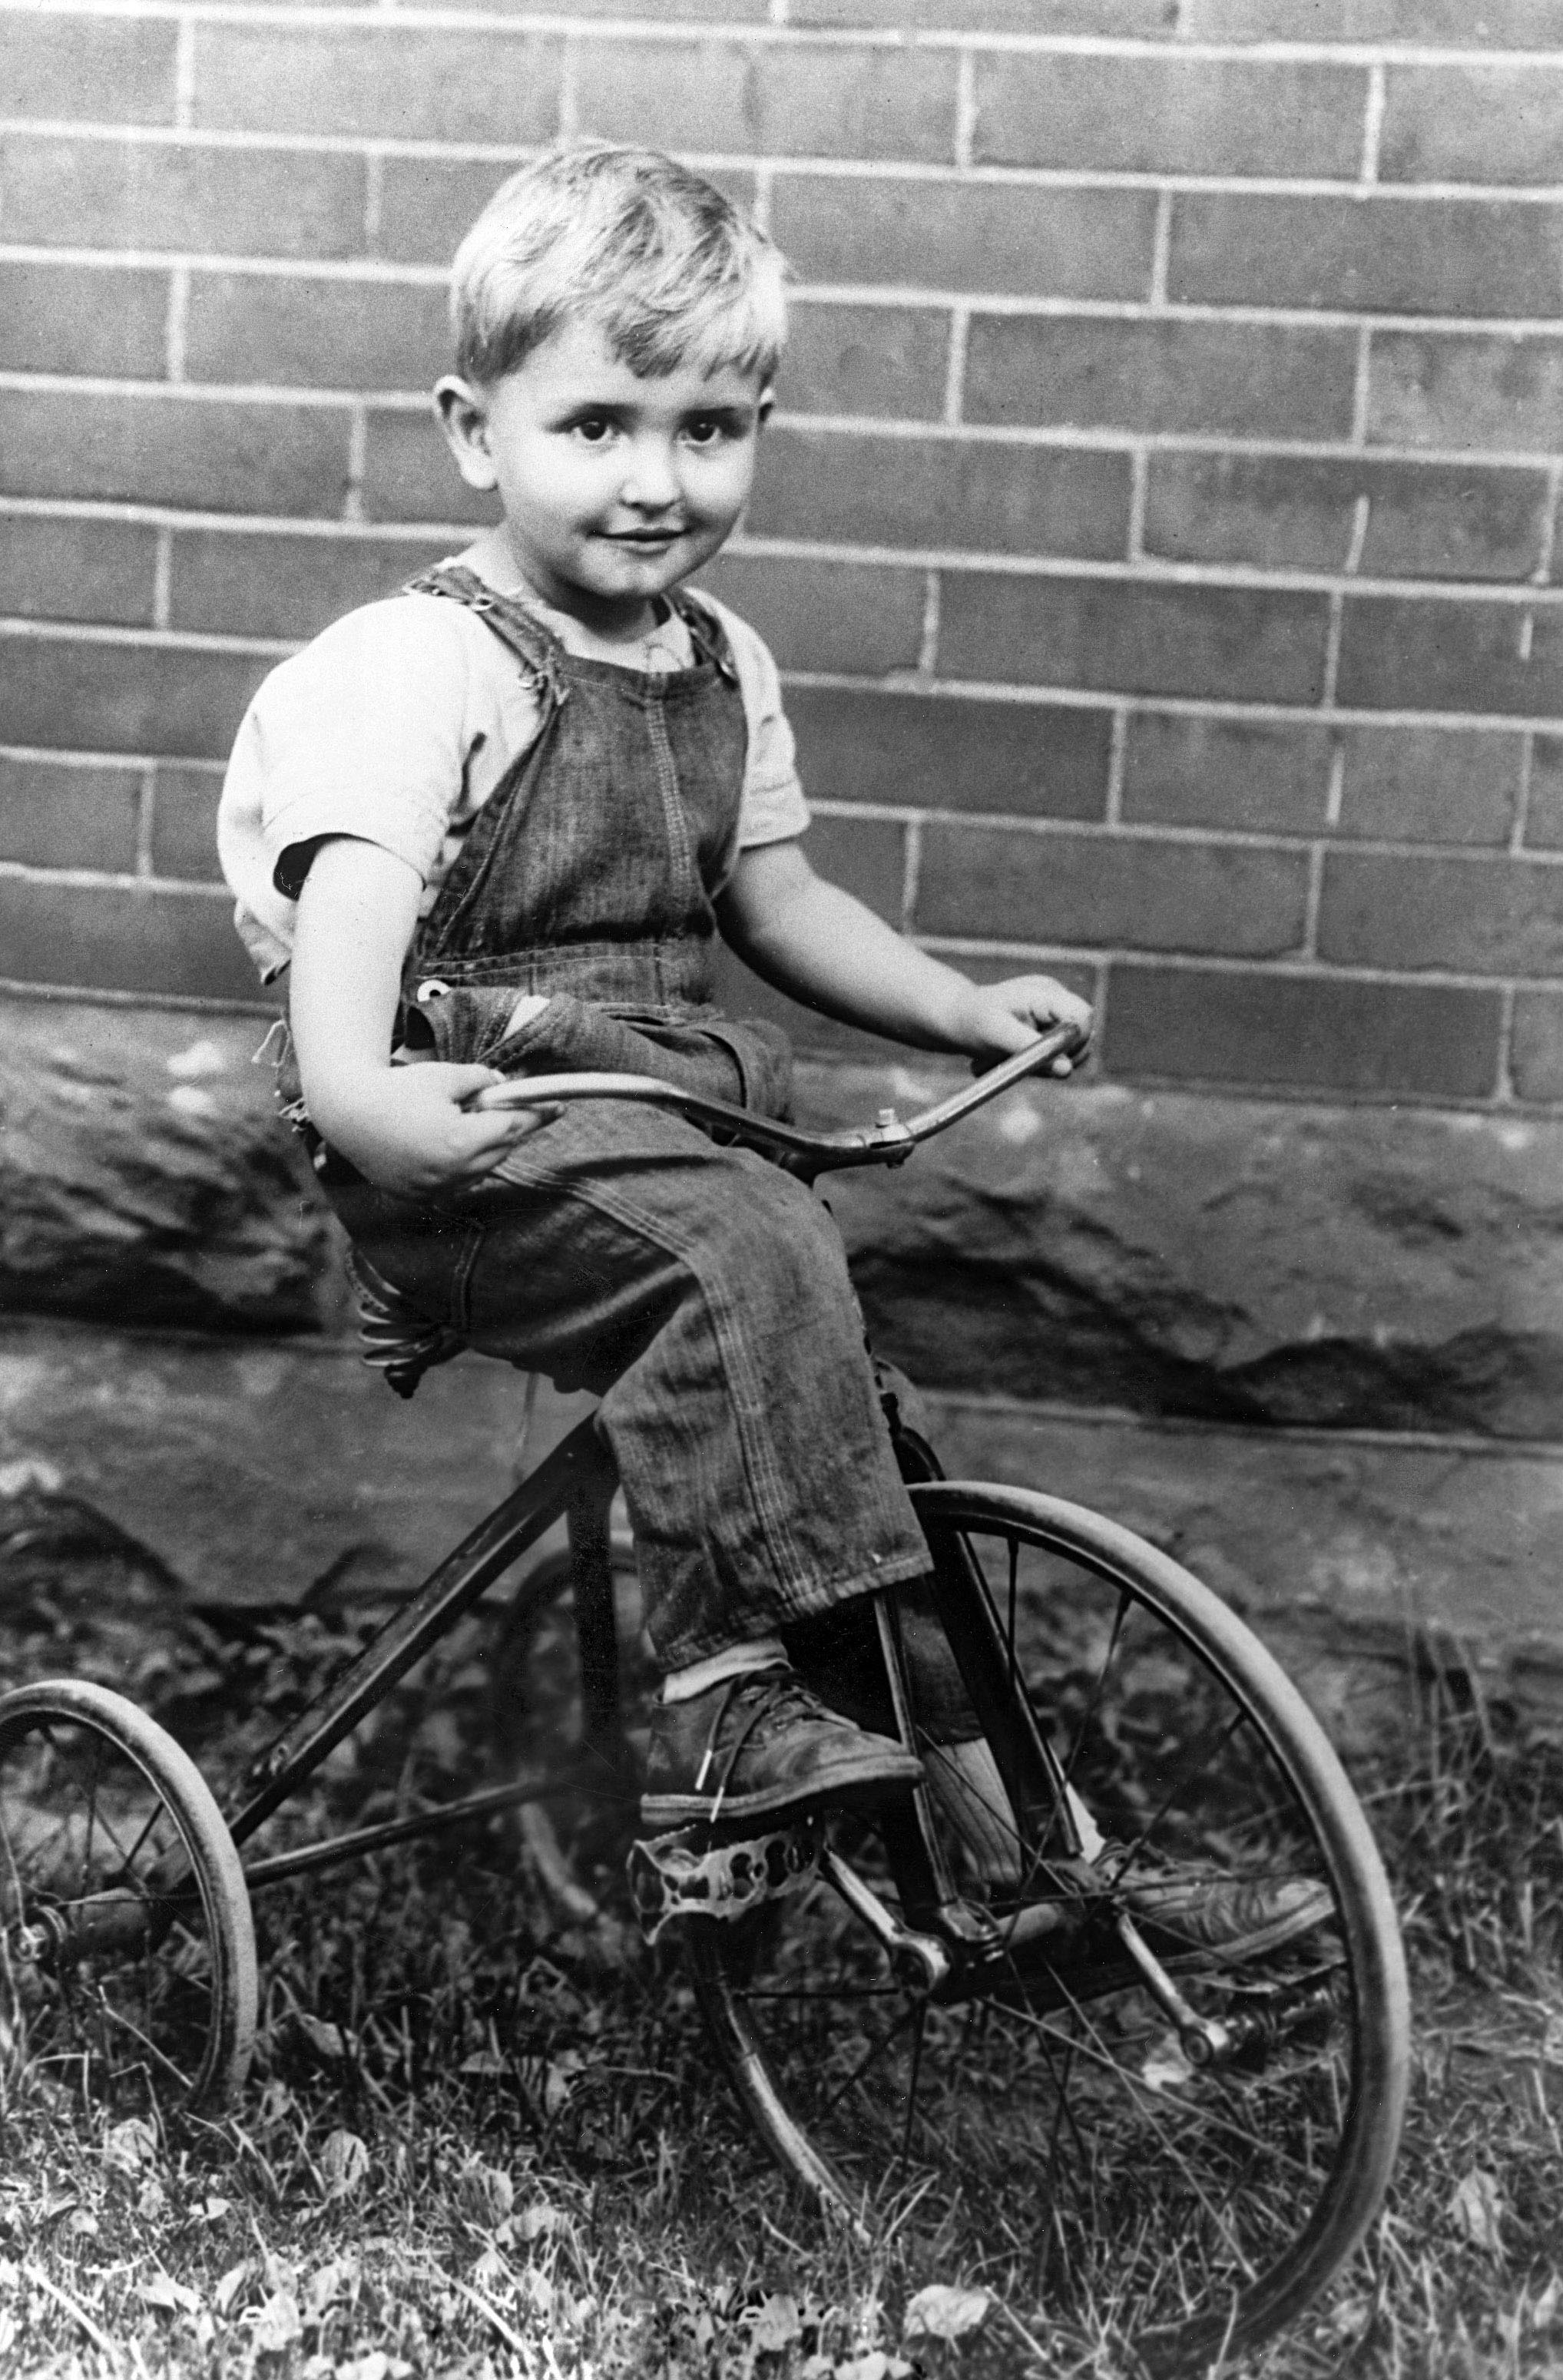 (Photo courtesy LDS Church) Thomas S. Monson on his bike as a young boy.